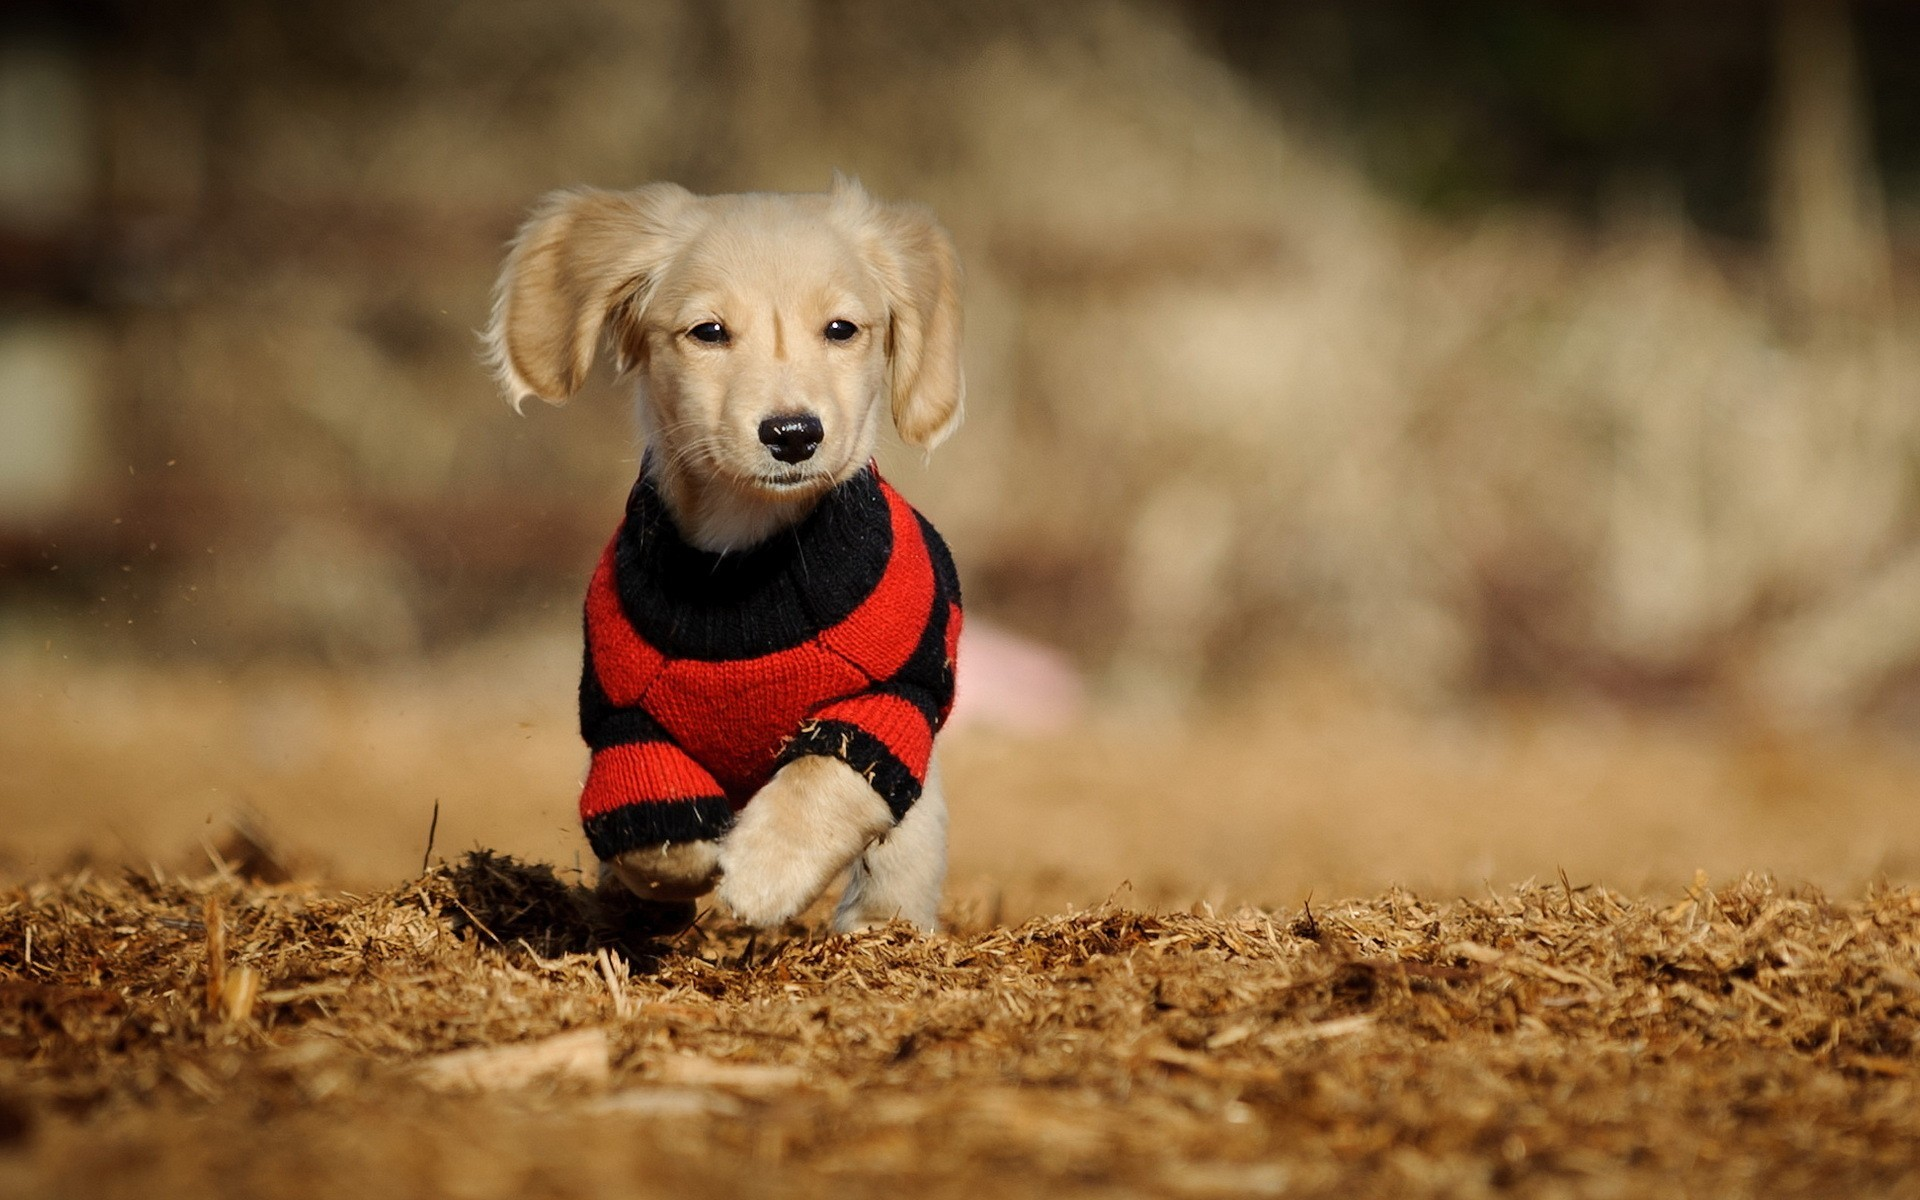 Cute wallpapers for PC and Ipad desktop background full screen